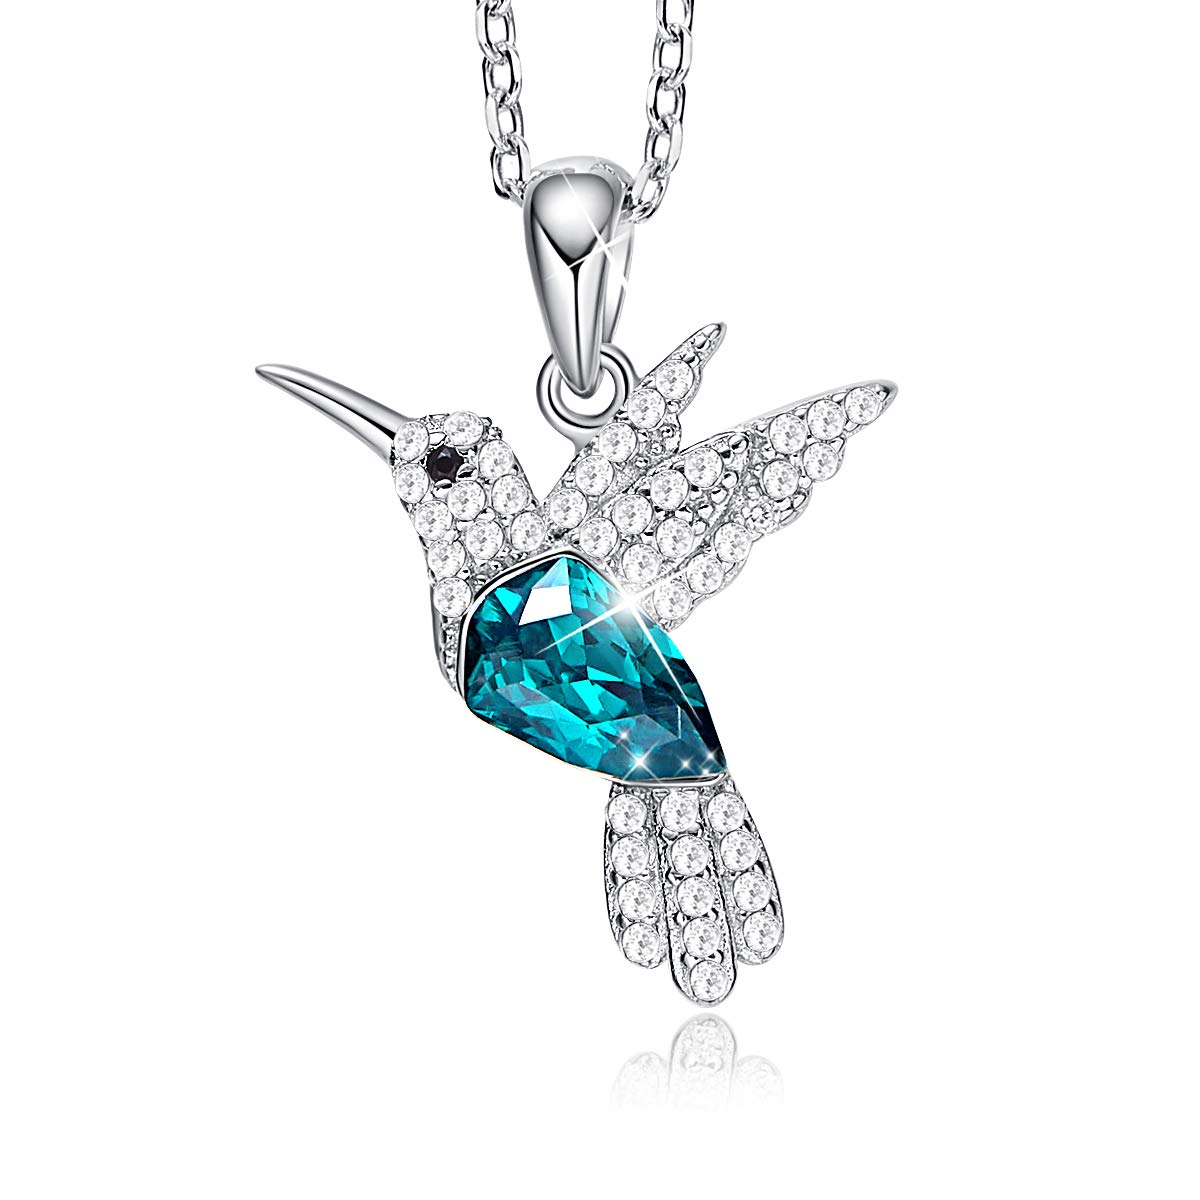 CDE S925 Sterling Silver Necklace Woman Swarovski Crystals Pendant Necklaces Hummingbird Fine Jewelry Gift for Her